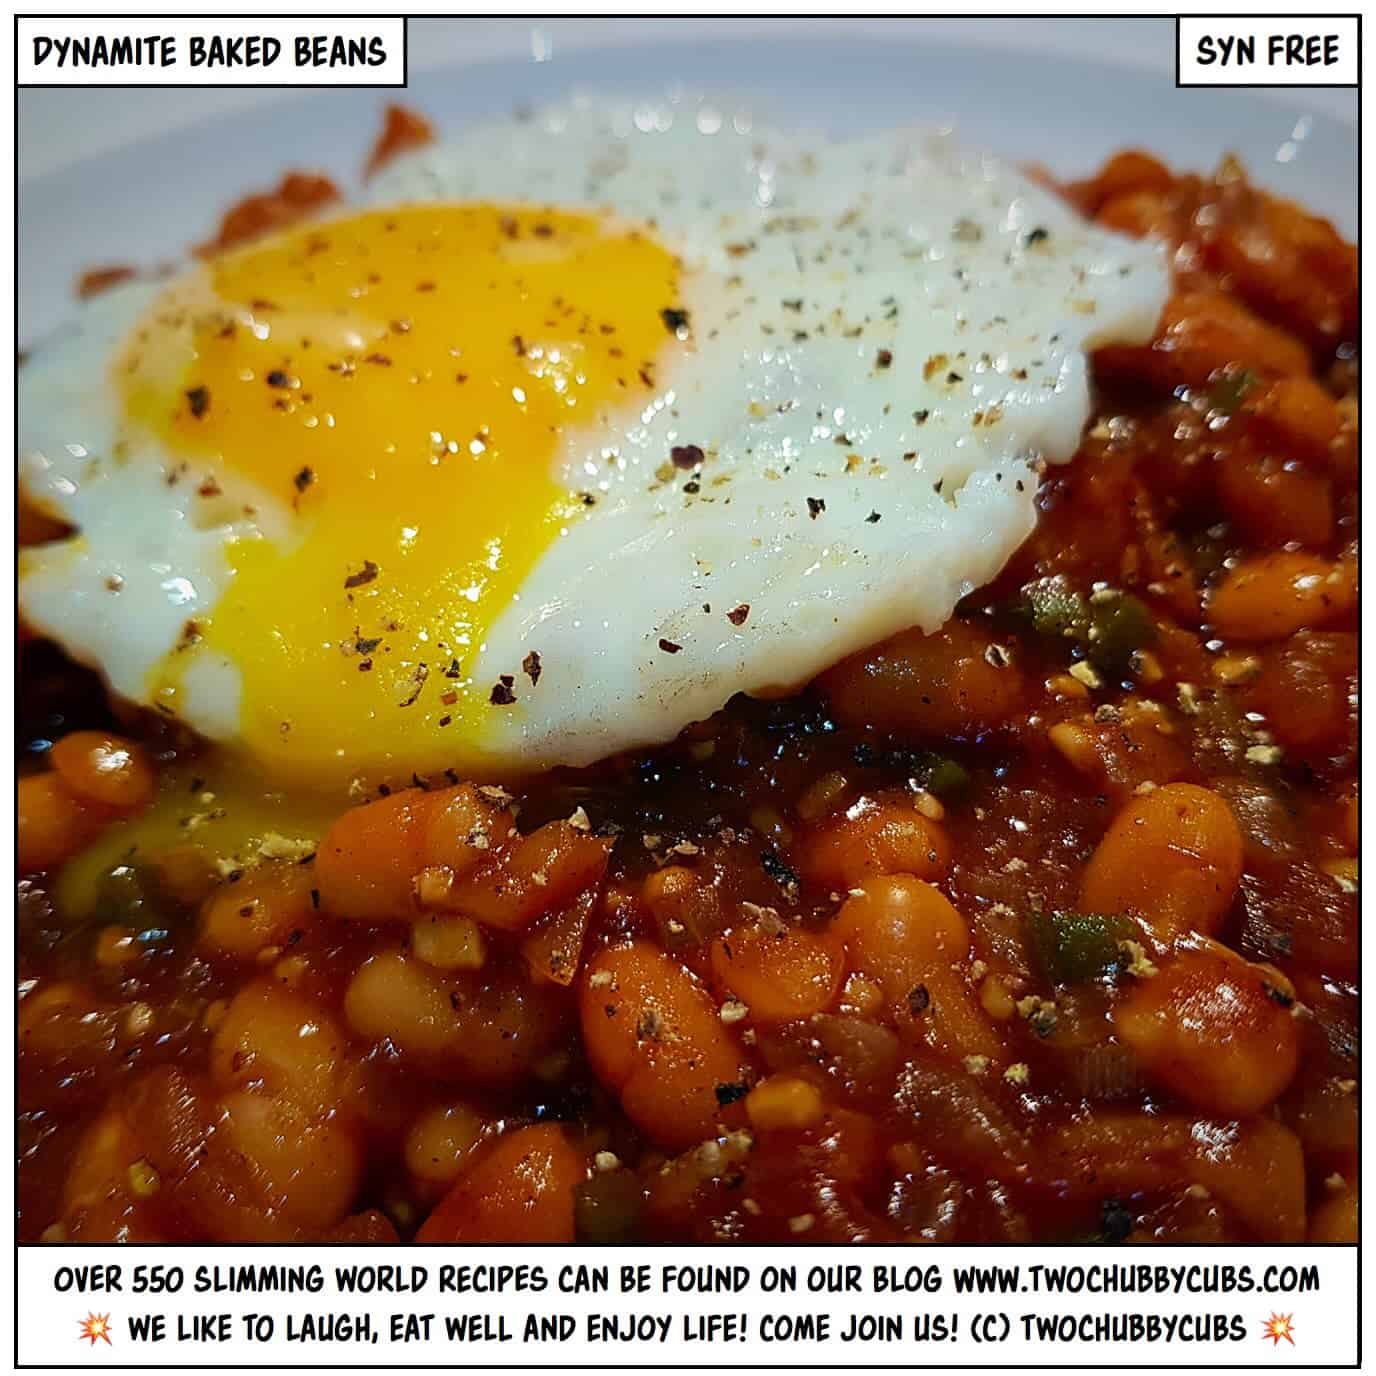 Dynamite Baked Beans Spicy Breakfast Time